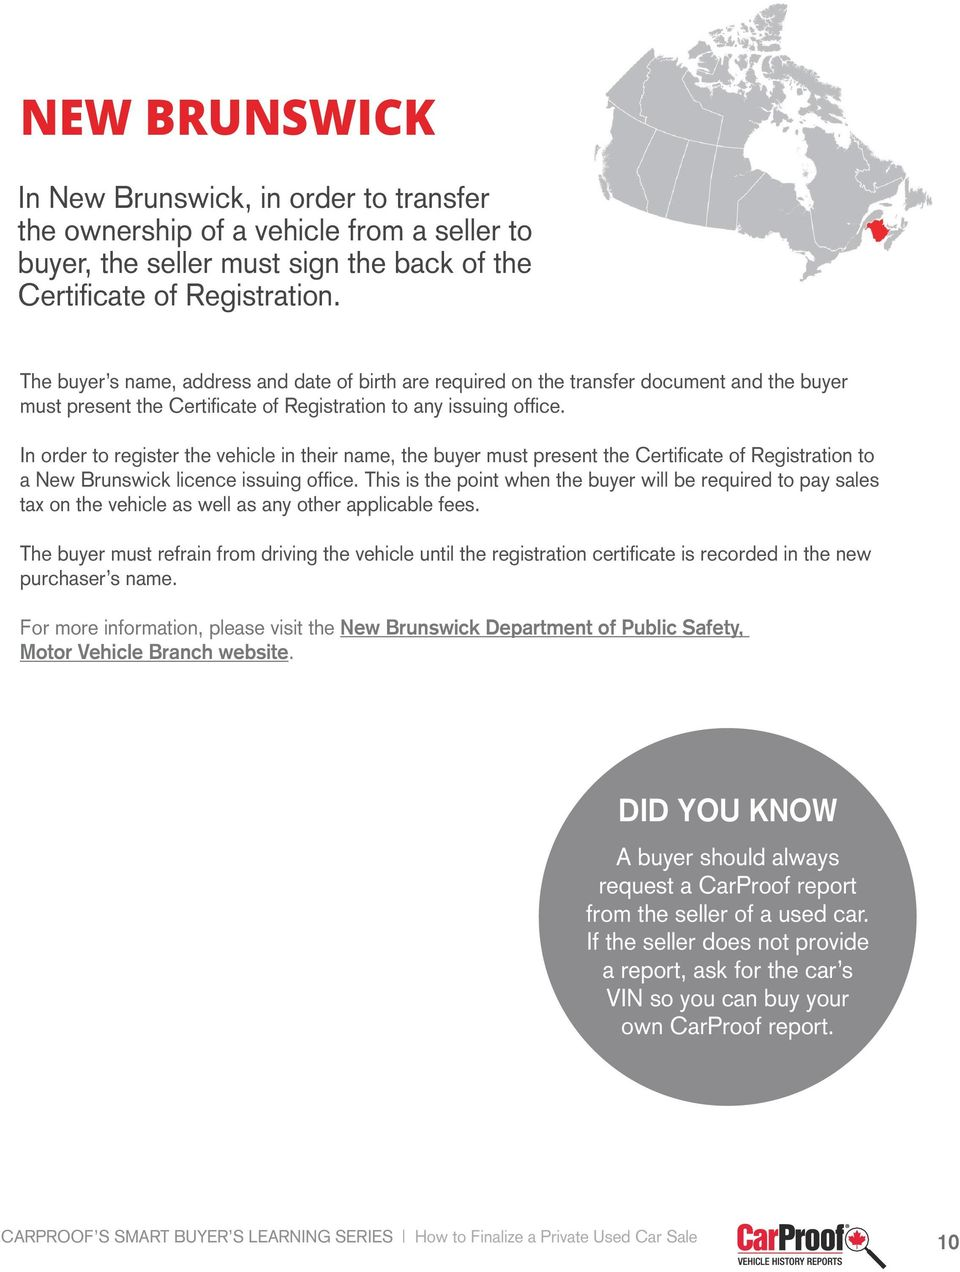 In order to register the vehicle in their name, the buyer must present the Certificate of Registration to a New Brunswick licence issuing office.